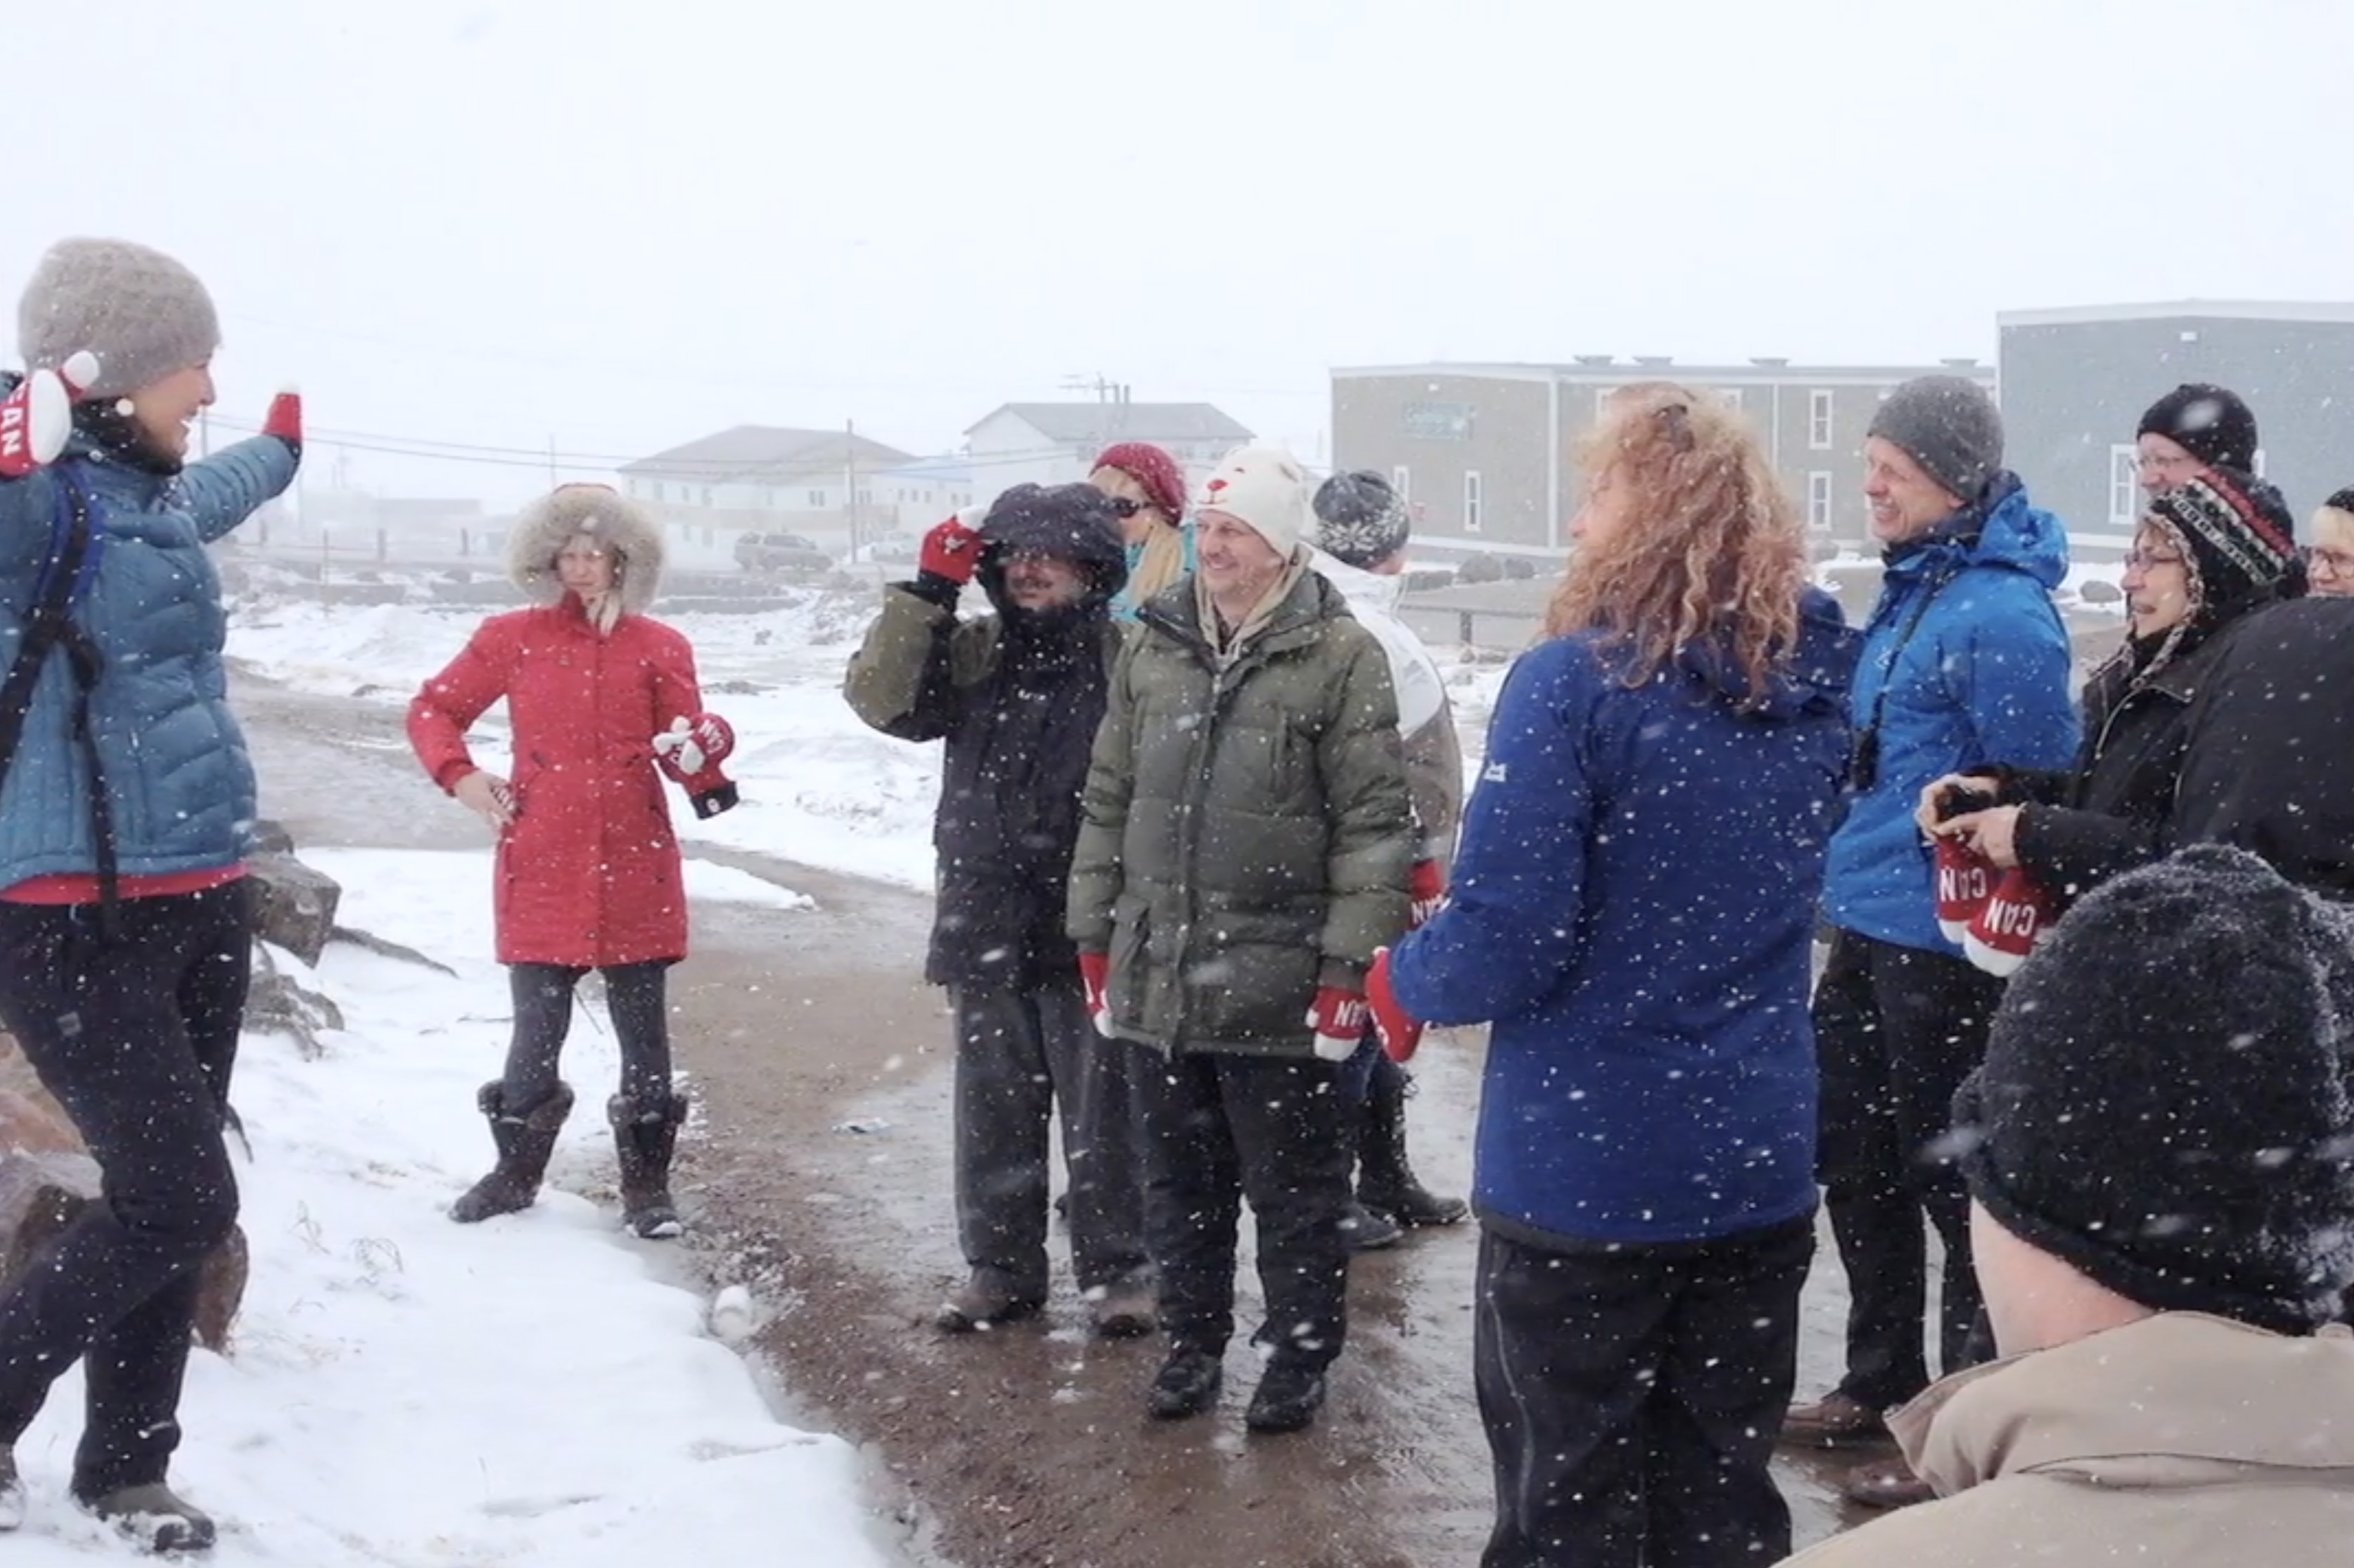 With second Fulbright group, US maintains Arctic research focus